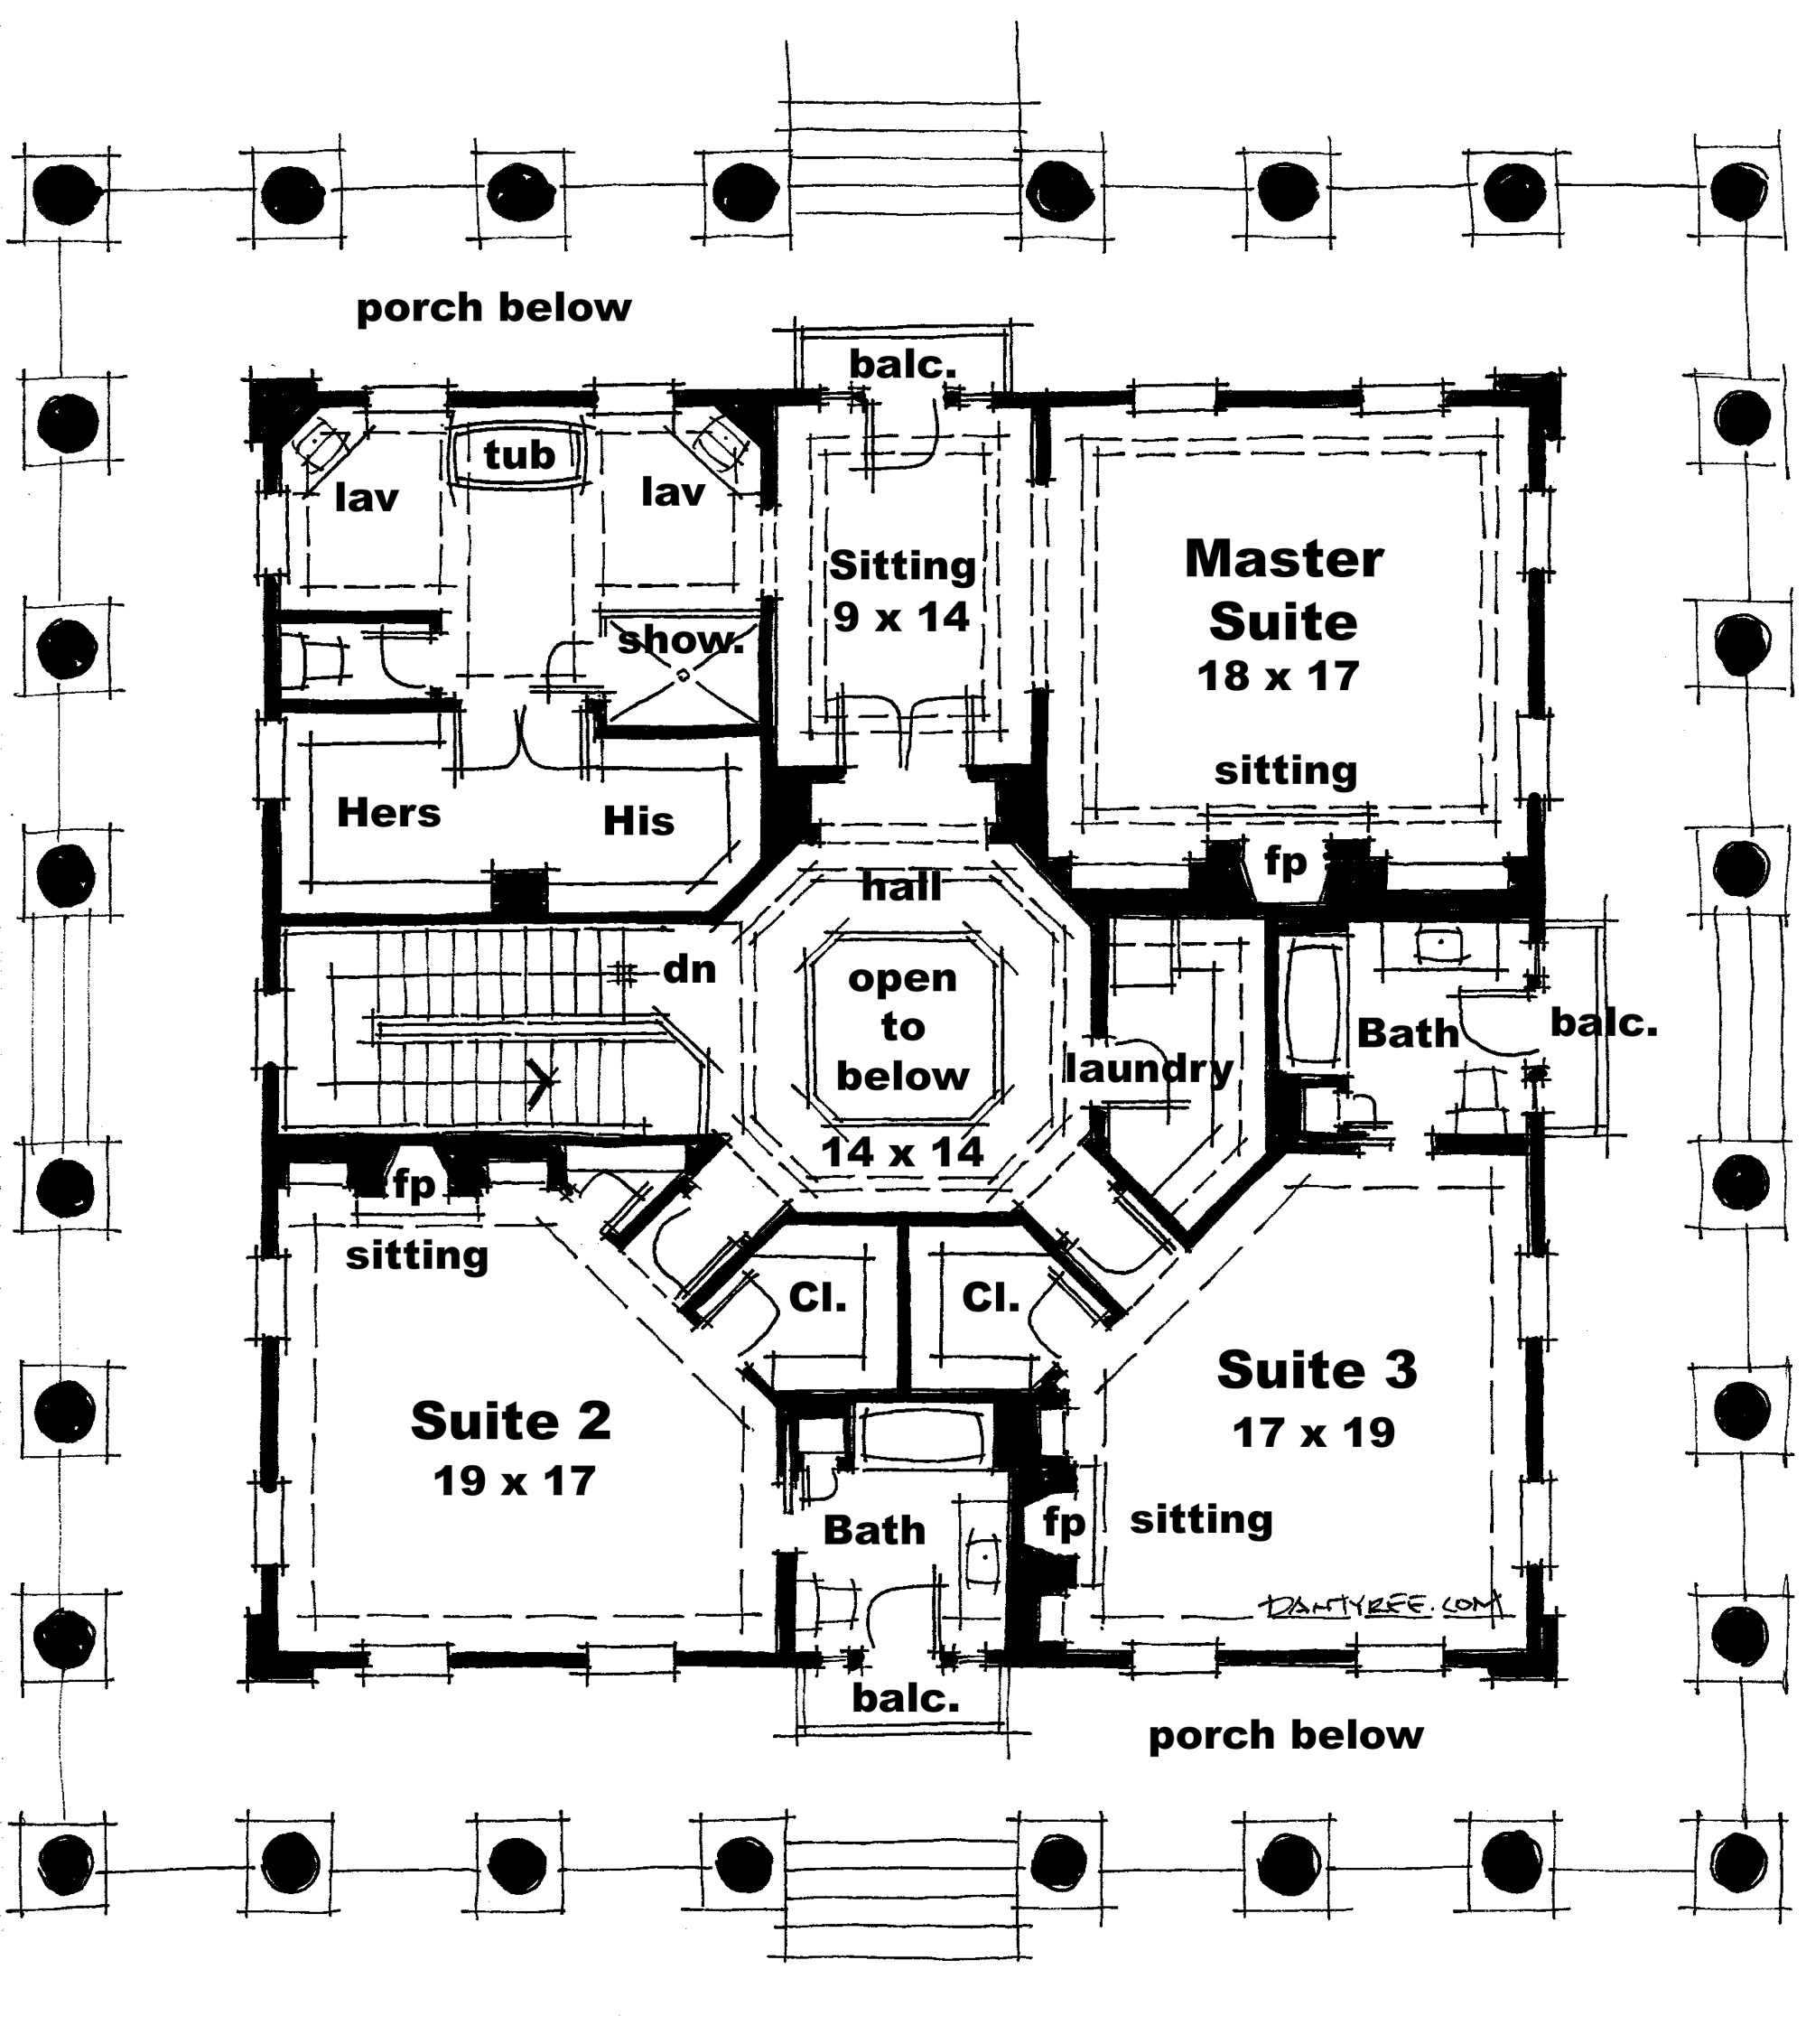 dward Stephen House Plan – yree House Plans - ^